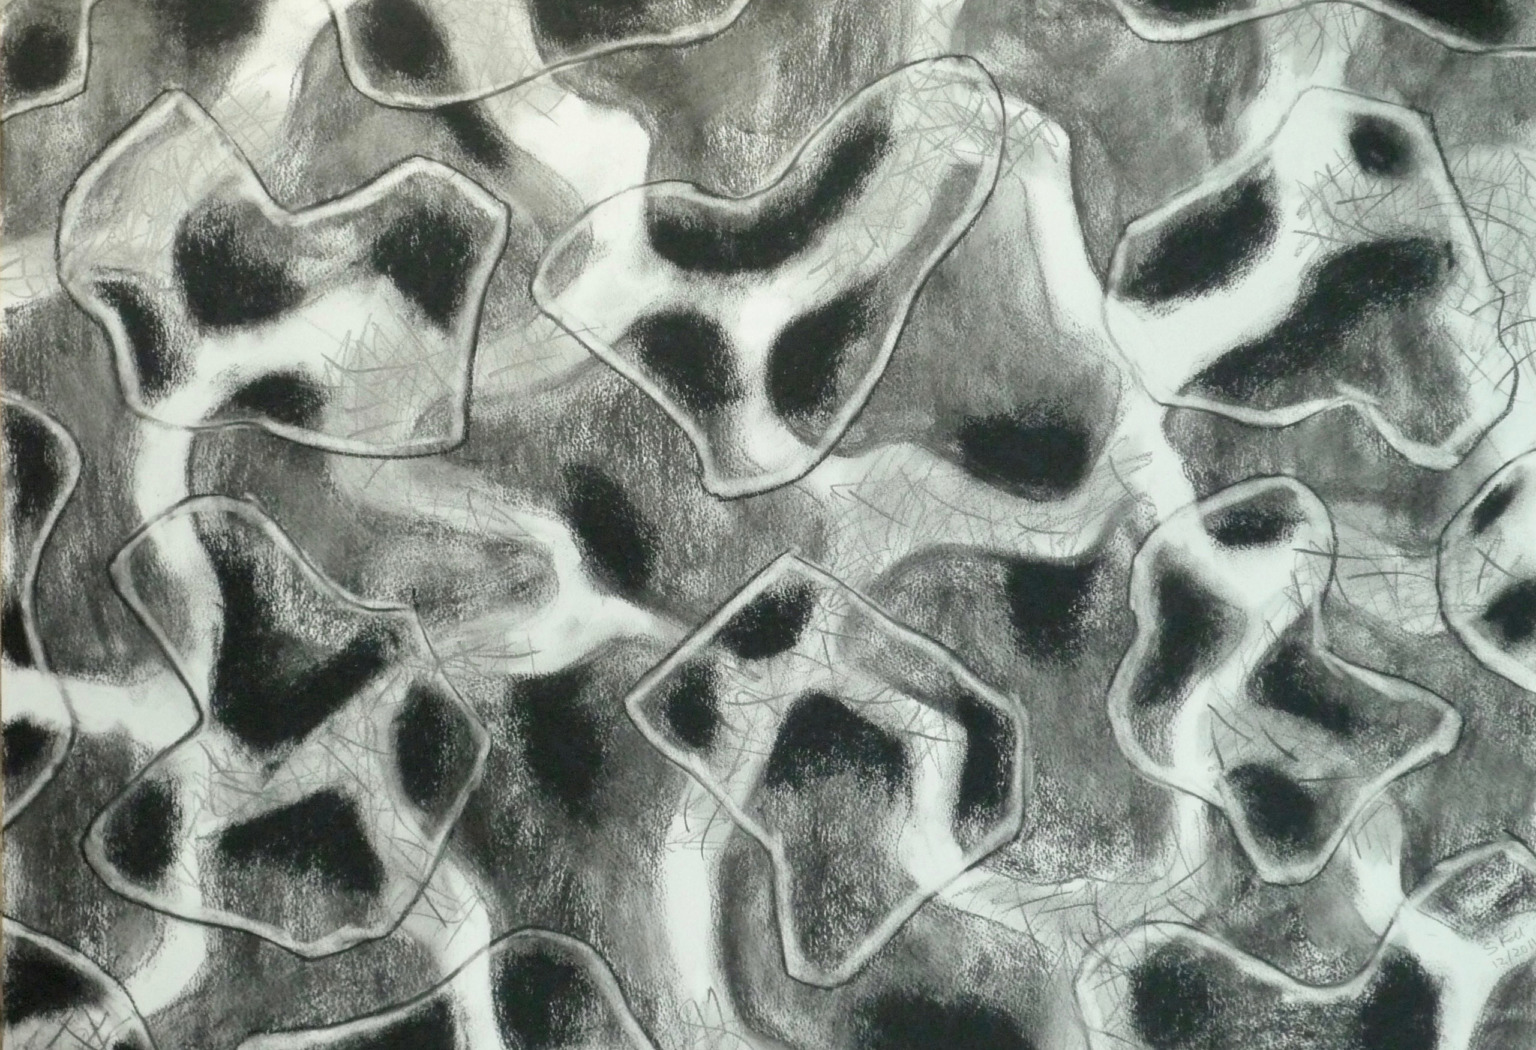 Haze phase, Charcoal on paper drawing, 2012. 76cm x 52cm